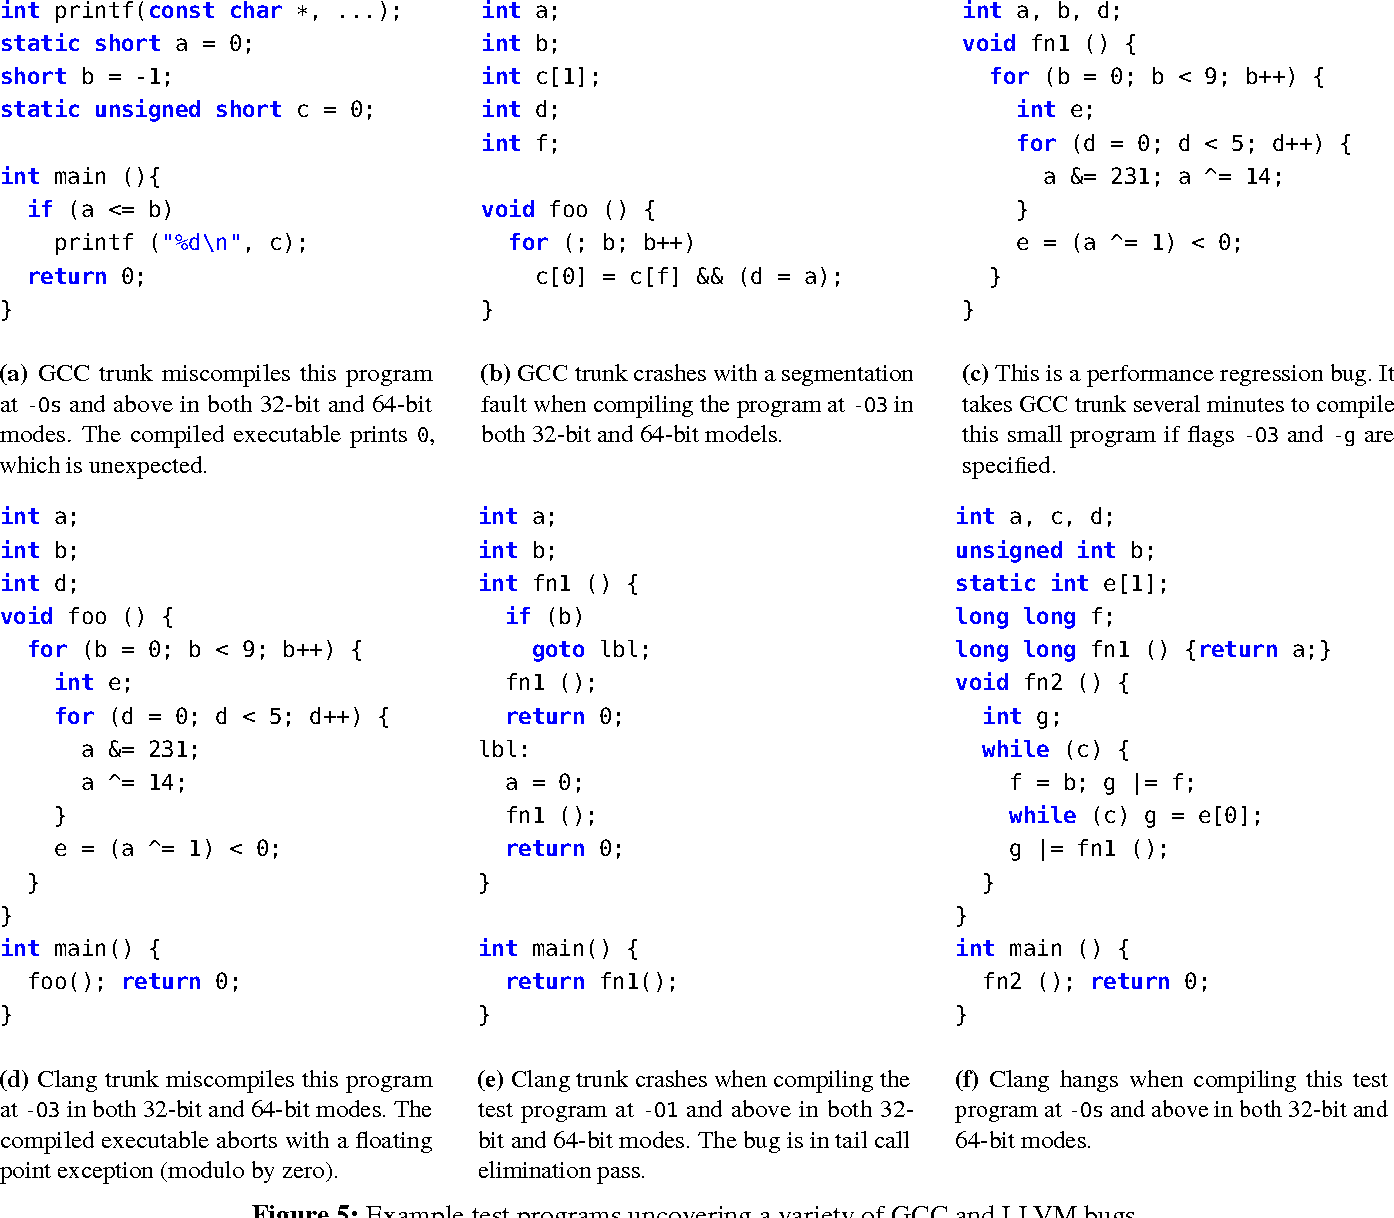 Finding deep compiler bugs via guided stochastic program